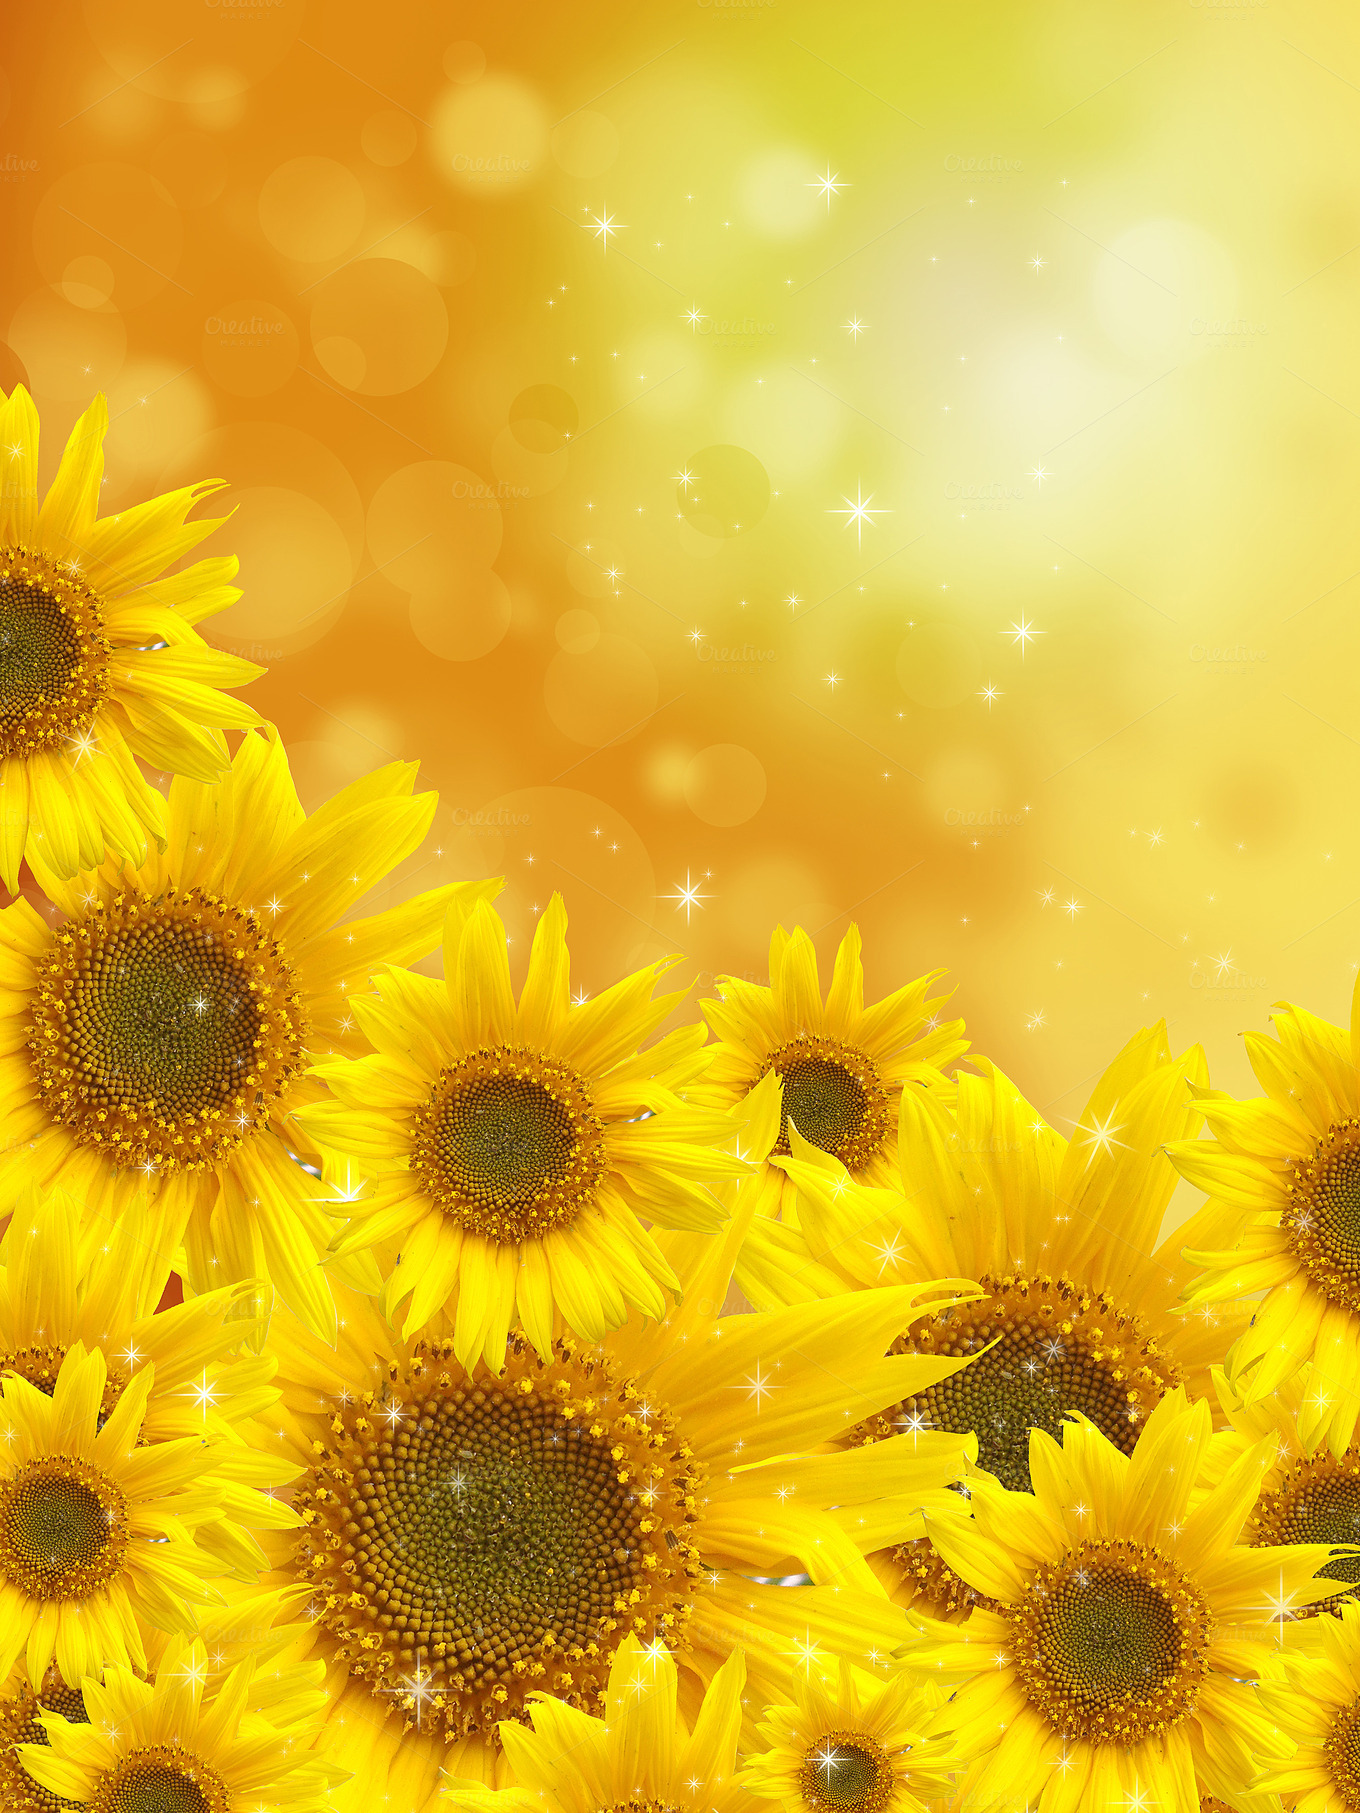 Sunflowers On Blurred Background Abstract Photos On Creative Market